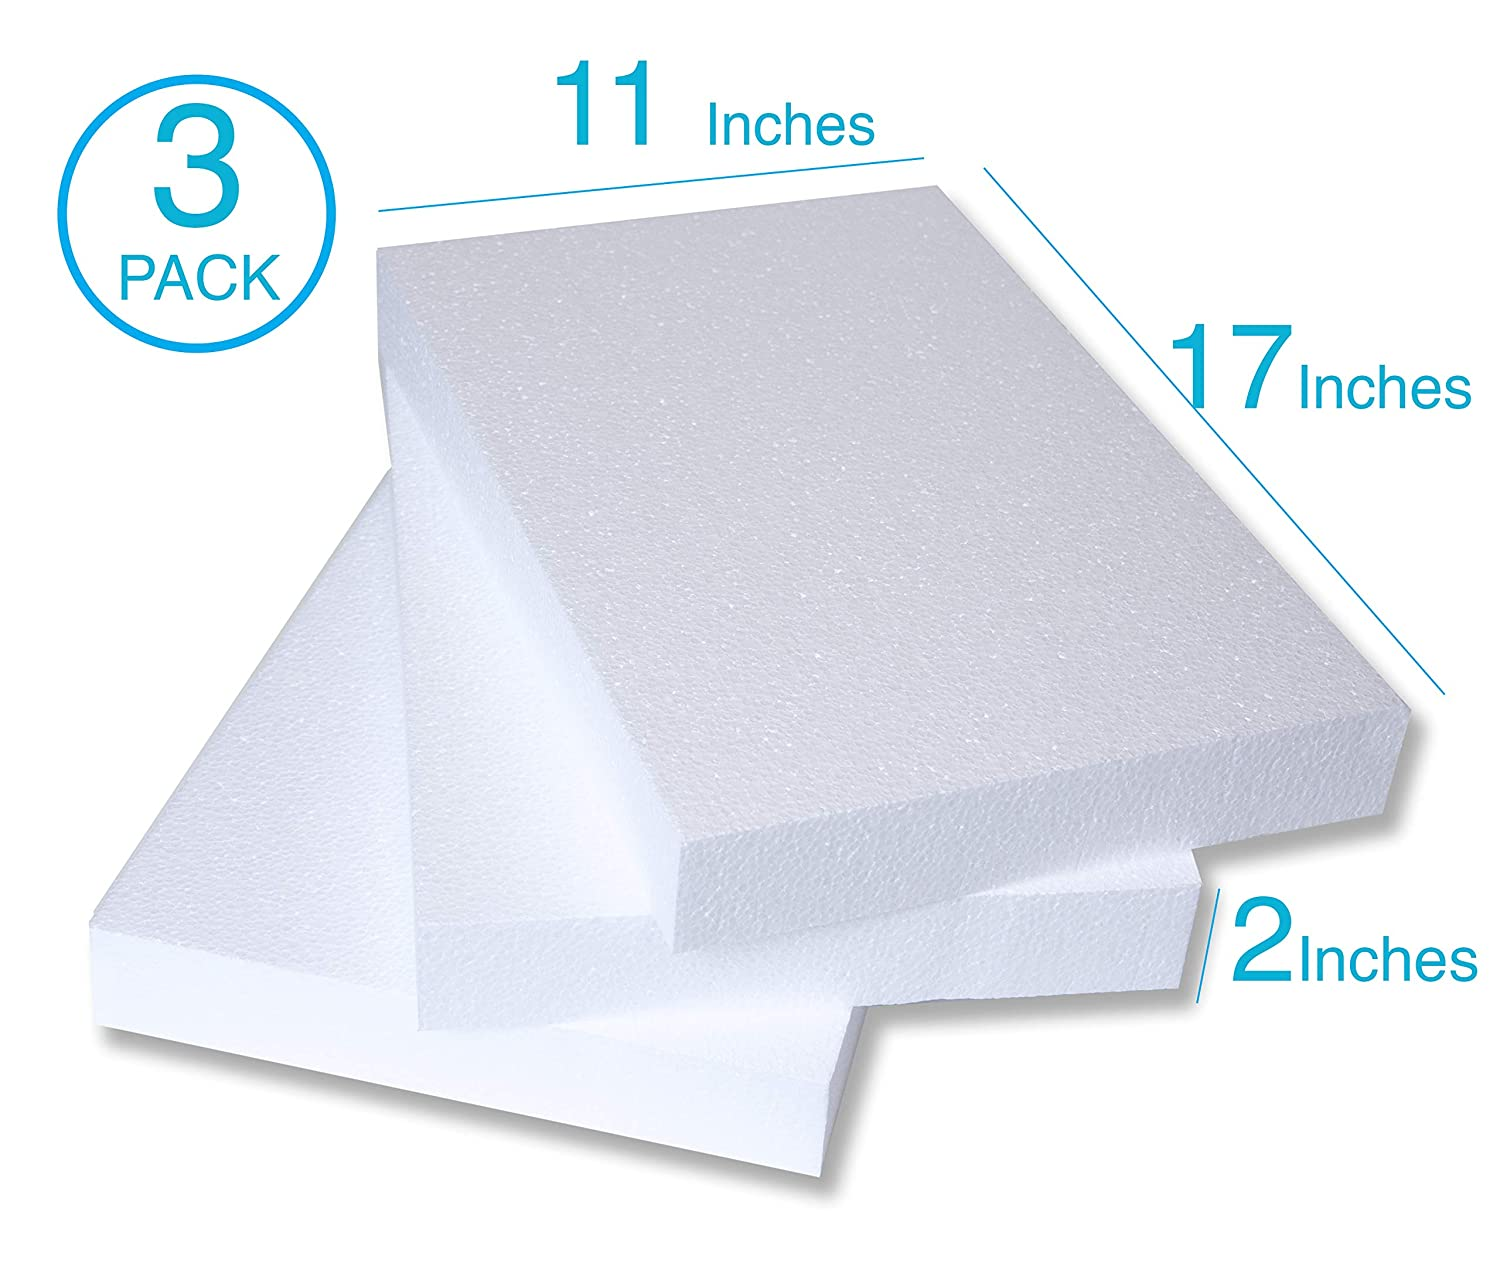 Large Craft Foam Block Art Projects and Floral Arrangements Modeling 3 Pack of 11x17x2 EPS Polystyrene Styrofoam Blocks for Crafting Large Sculpting Sheets for DIY School /& Home Art Projects